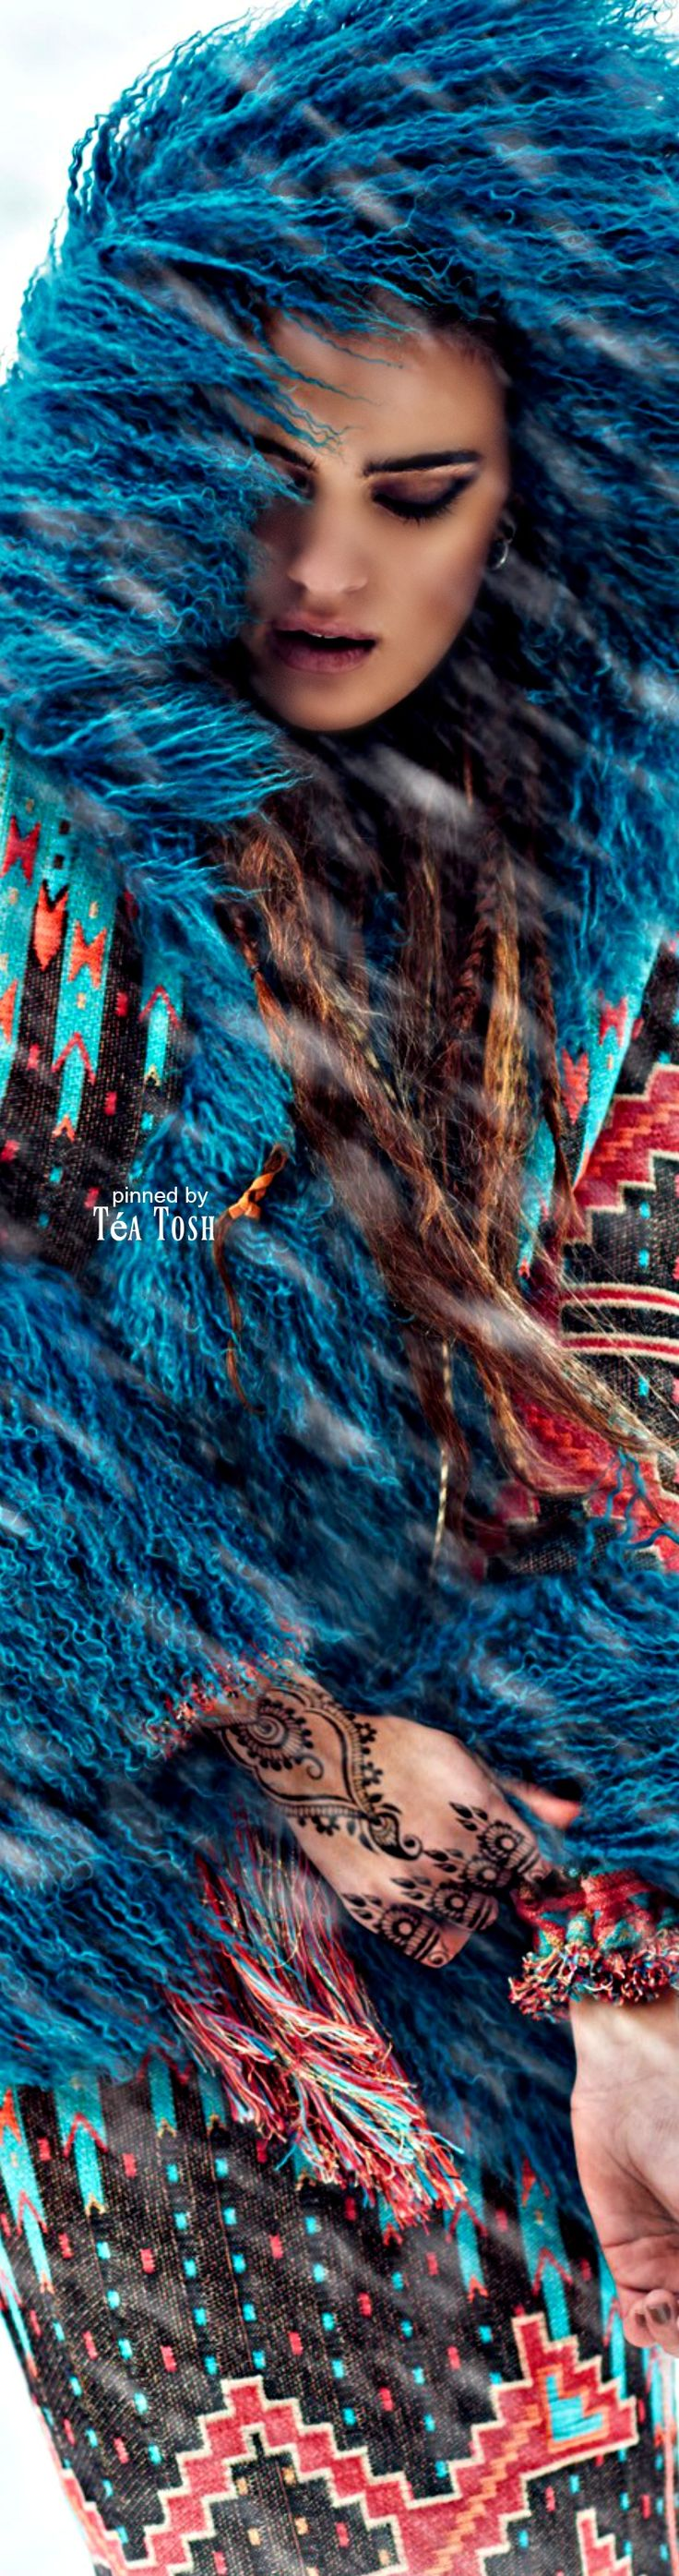 ❈Téa Tosh❈Tete by Odette, Fall/Winter 2017